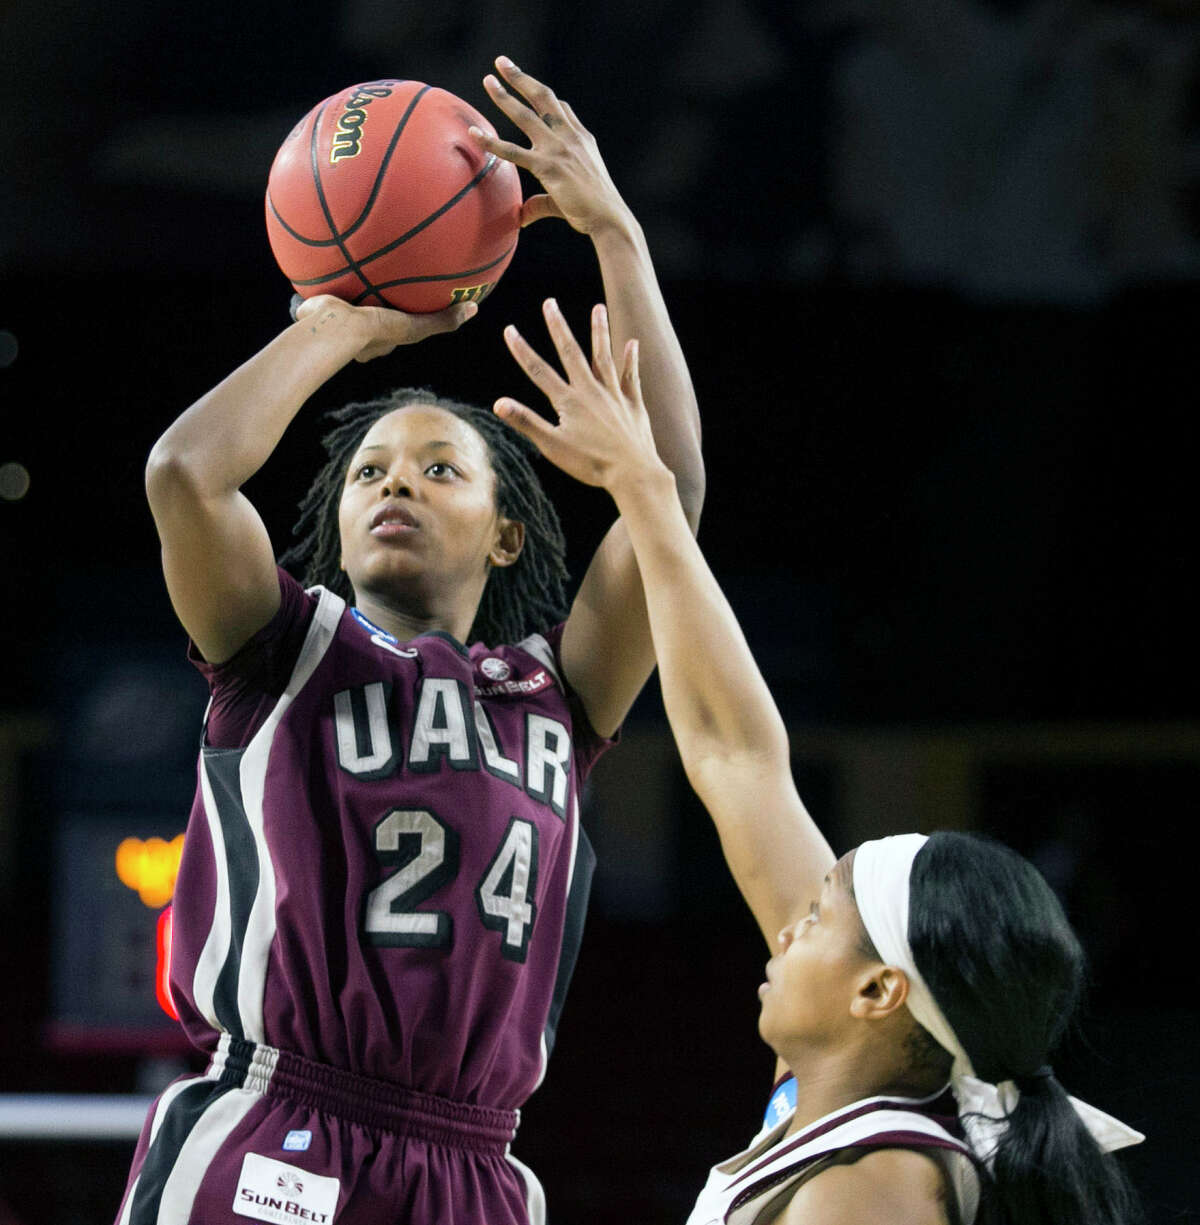 Arkansas-Little Rock guard Taylor Gault (24) was too much to handle for Texas A&M's Chelsea Jennings and her teammates, scoring a season-high 25 points.